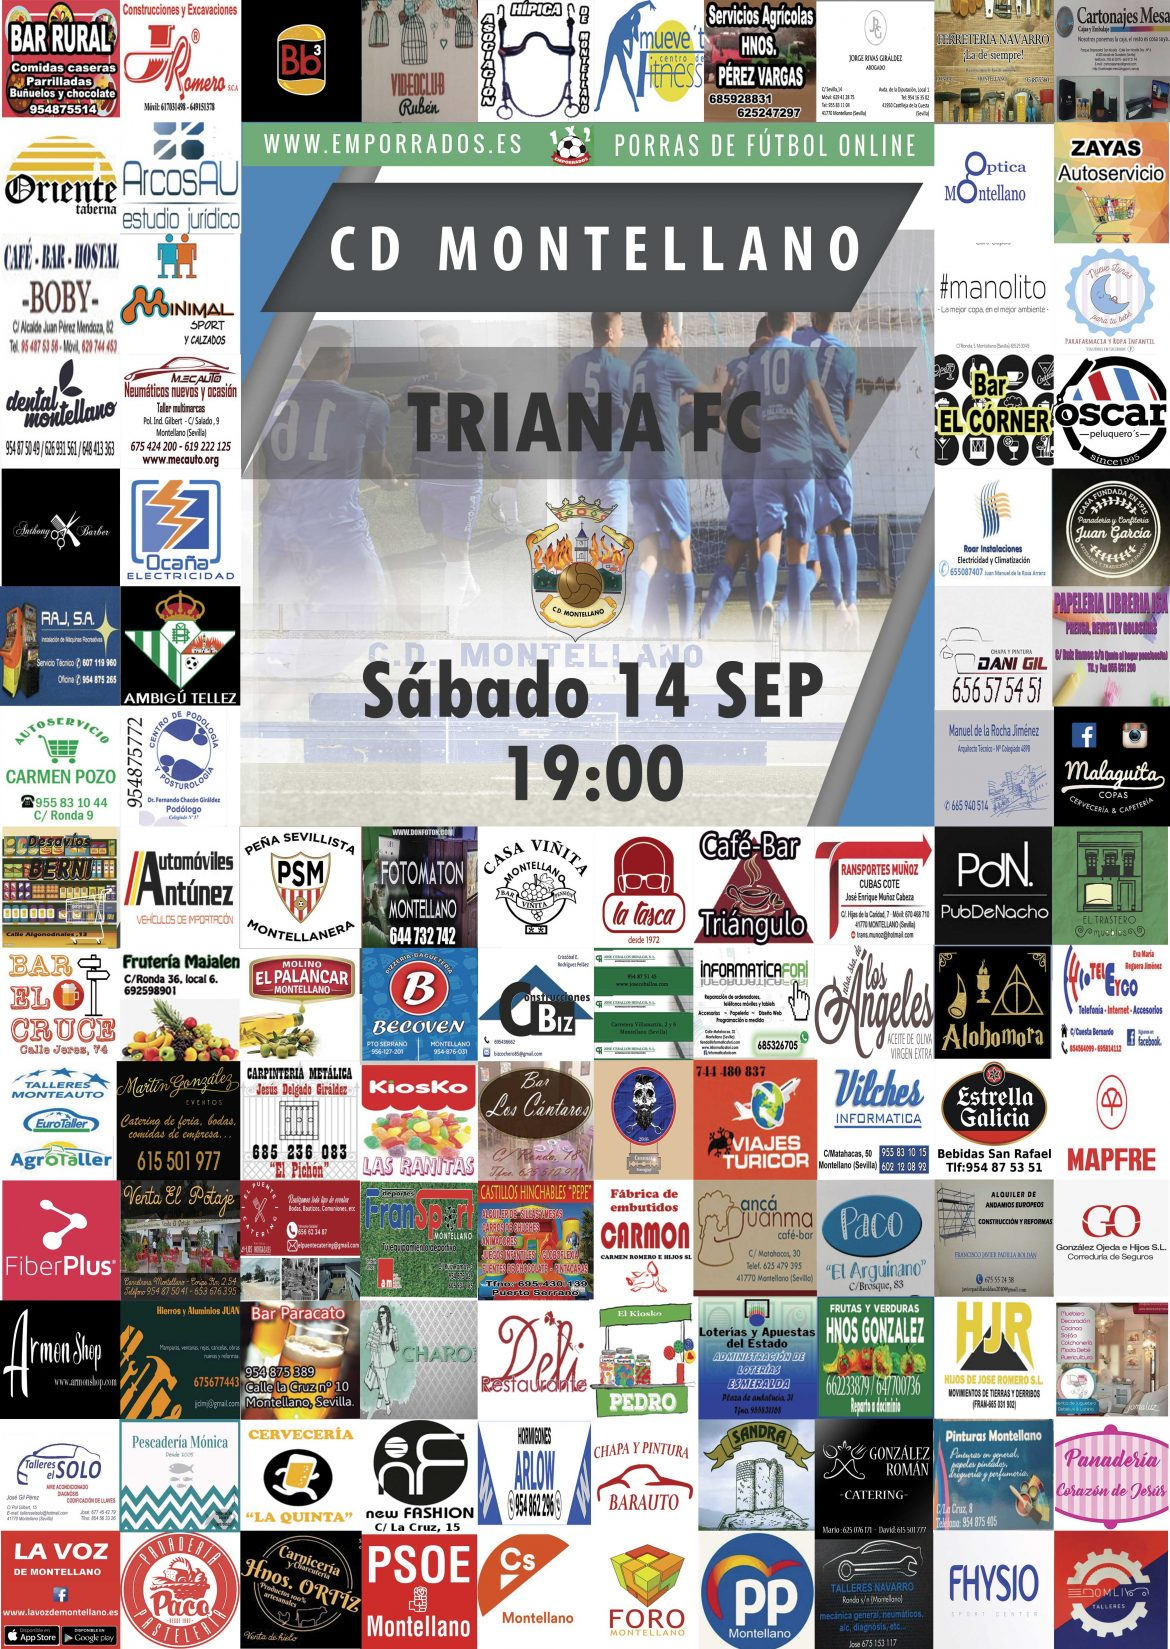 montellano-vs-triana 2019